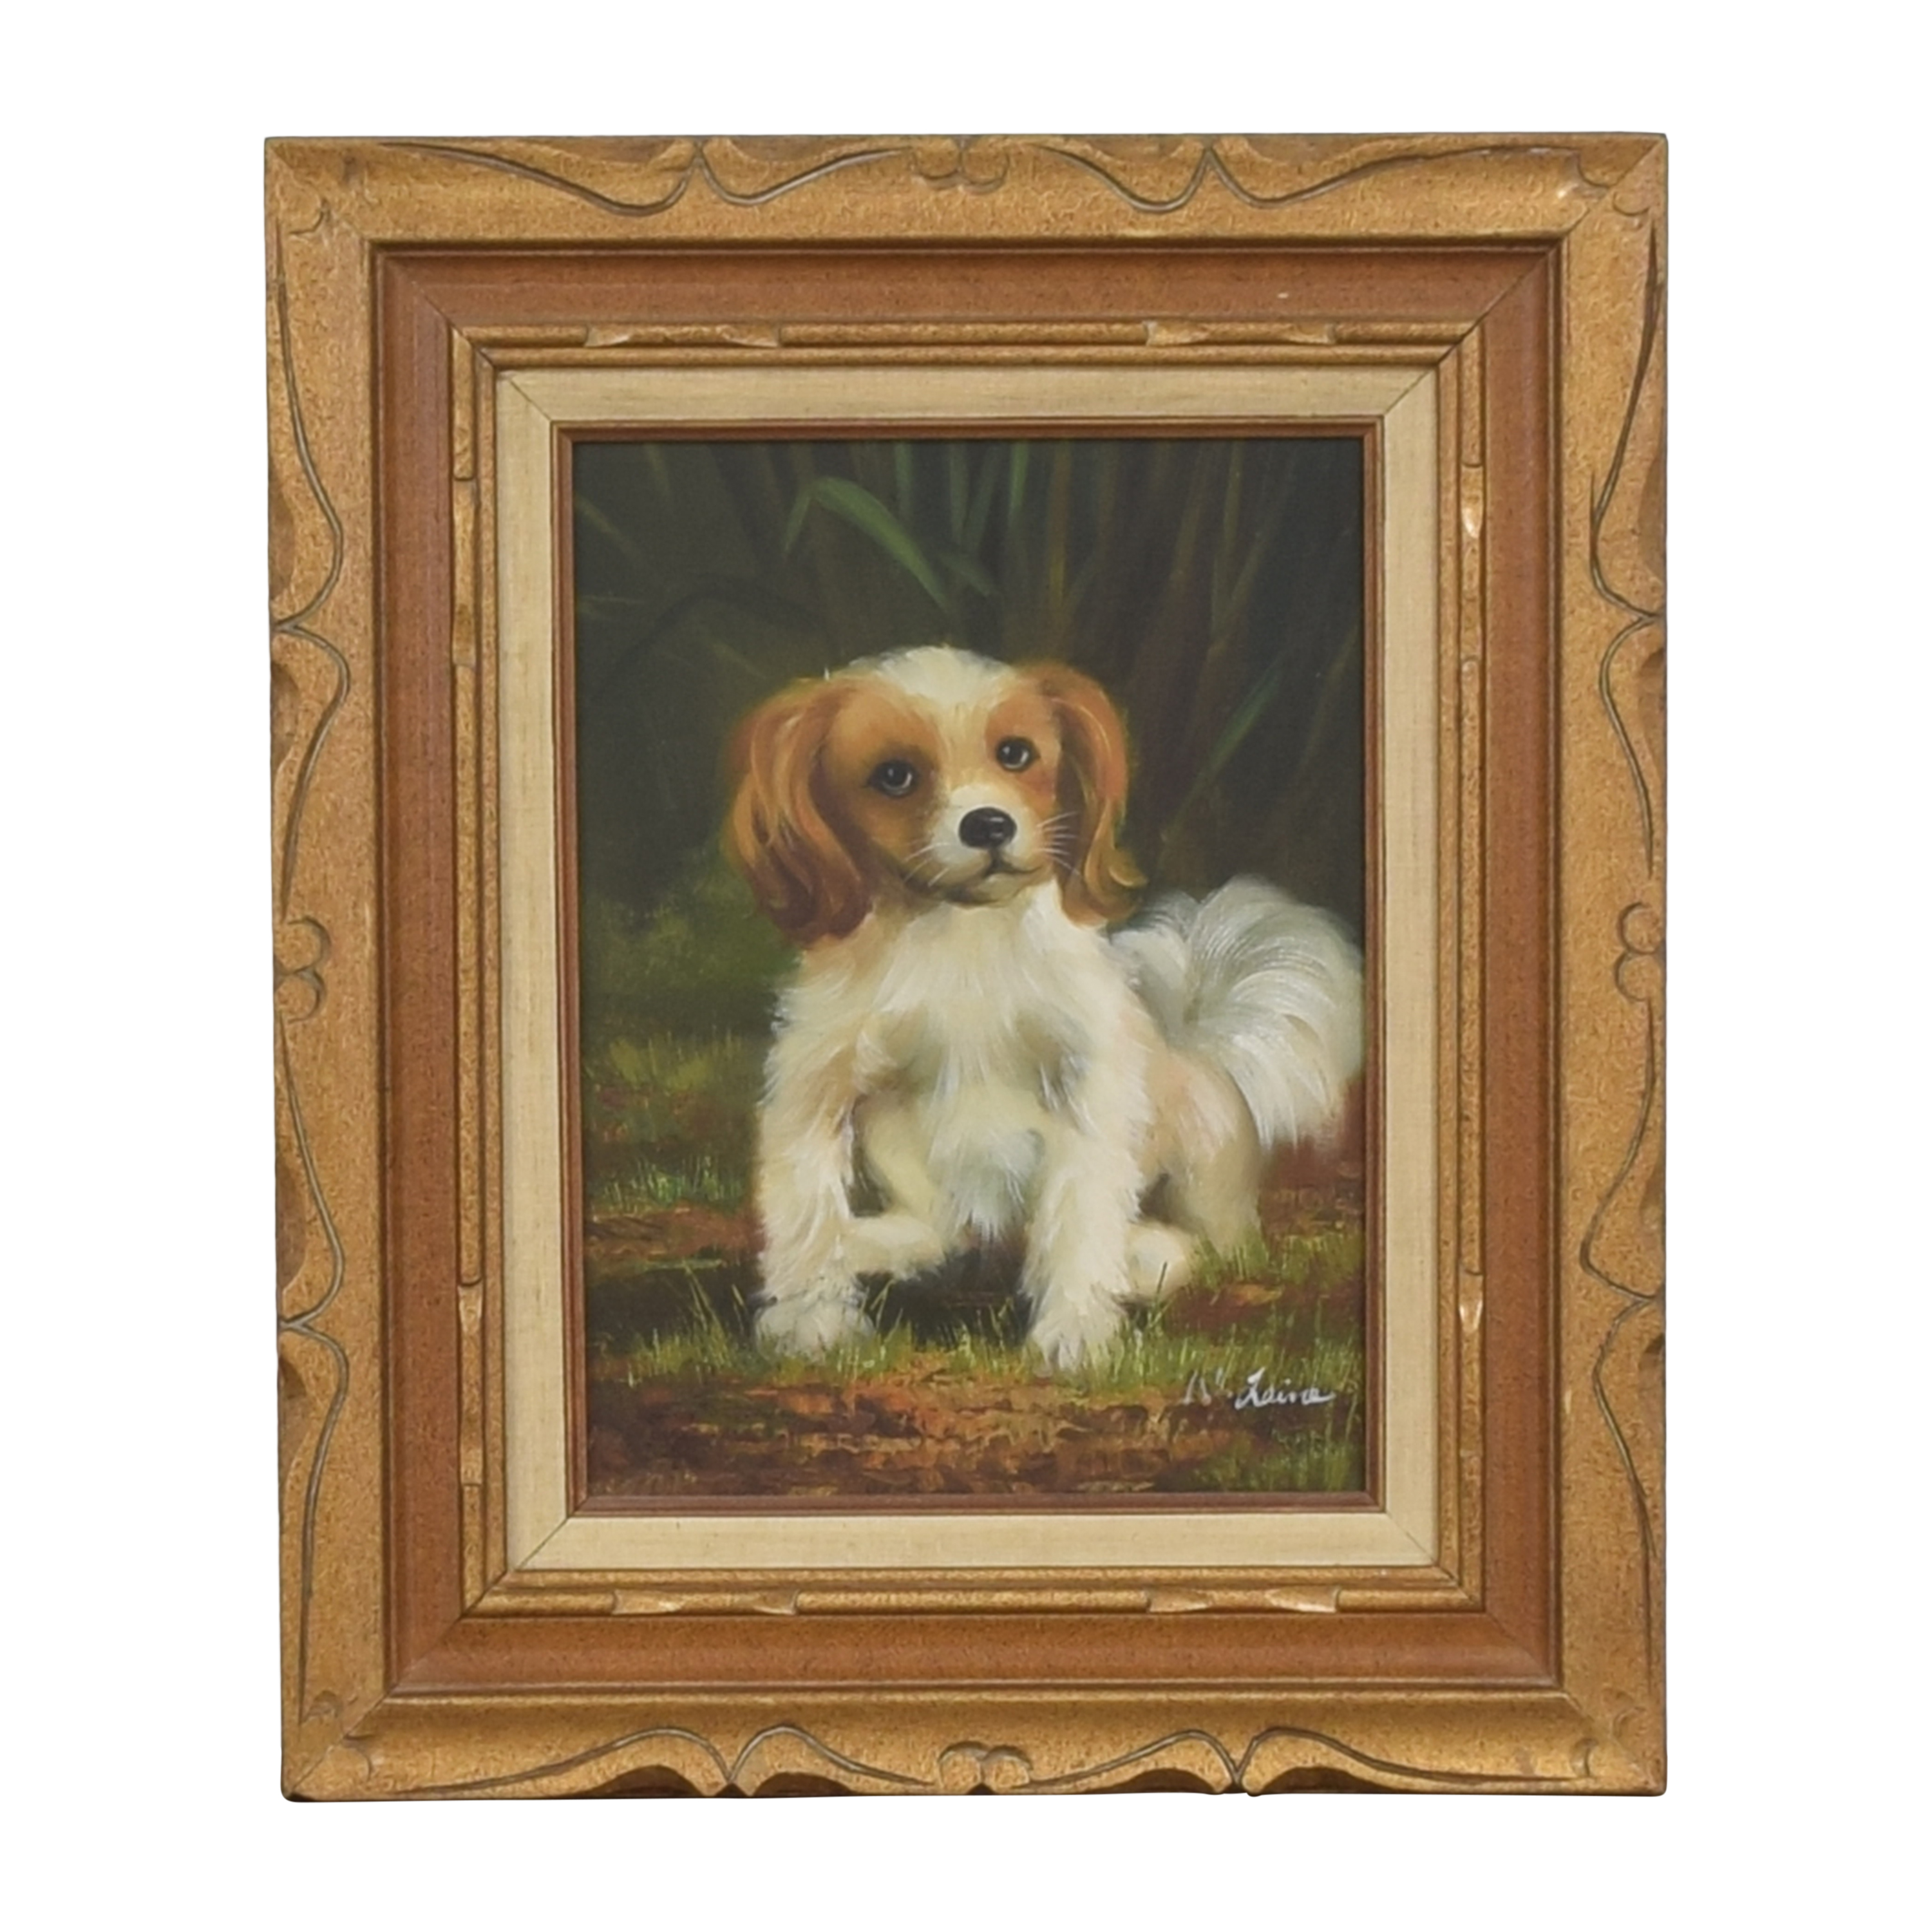 Framed Canine Wall Art coupon